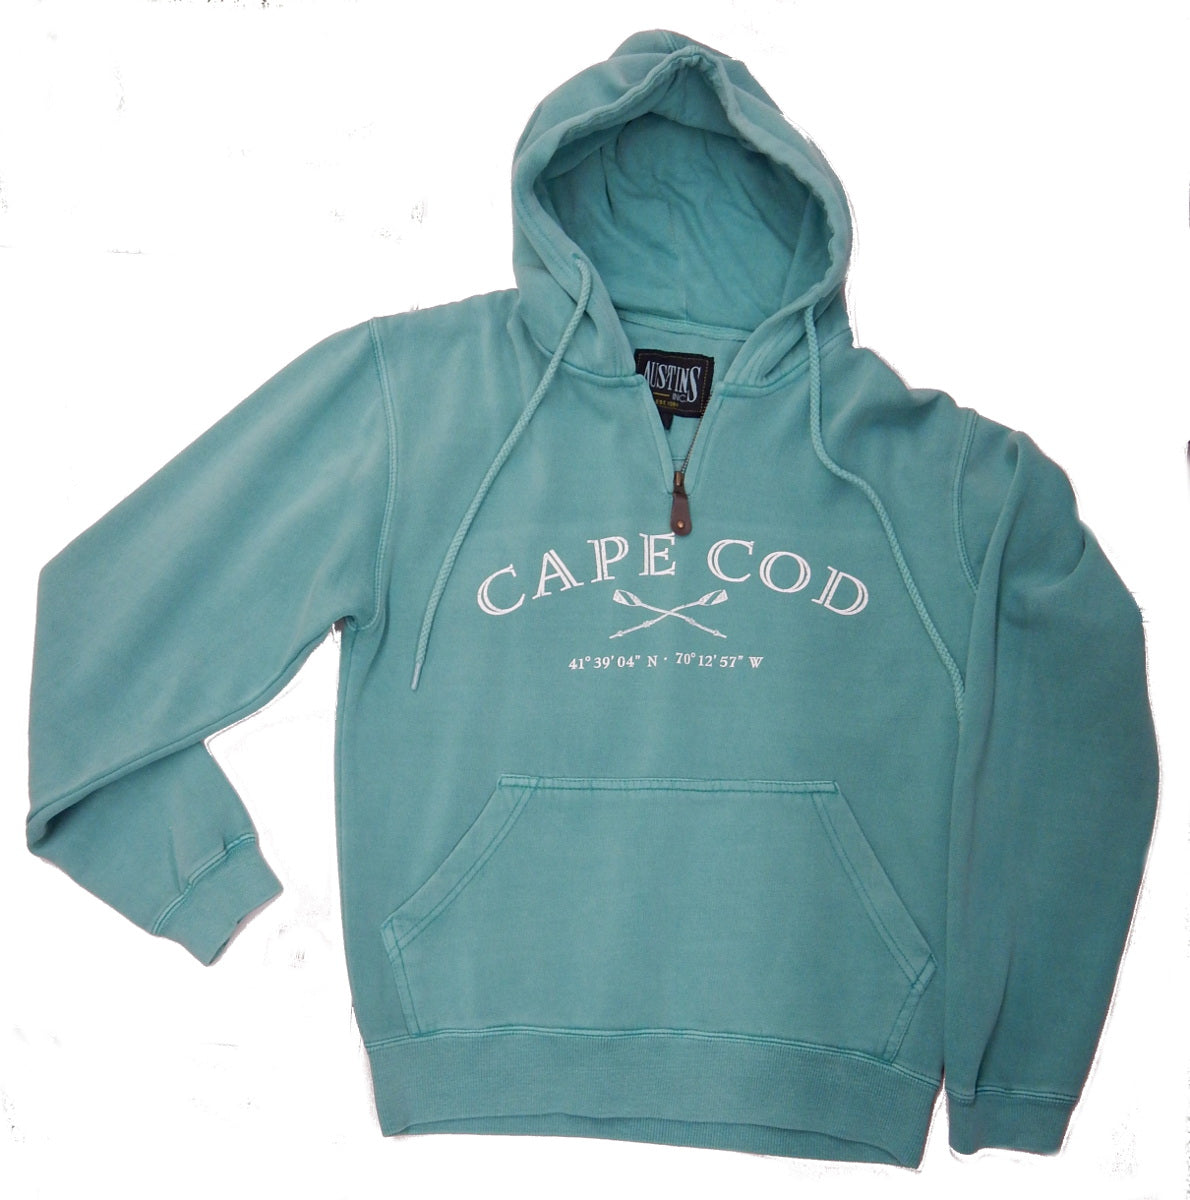 Quarter Zip Pigment-Dyed Hooded Sweatshirt<br>CAPE COD<br>by Austin's